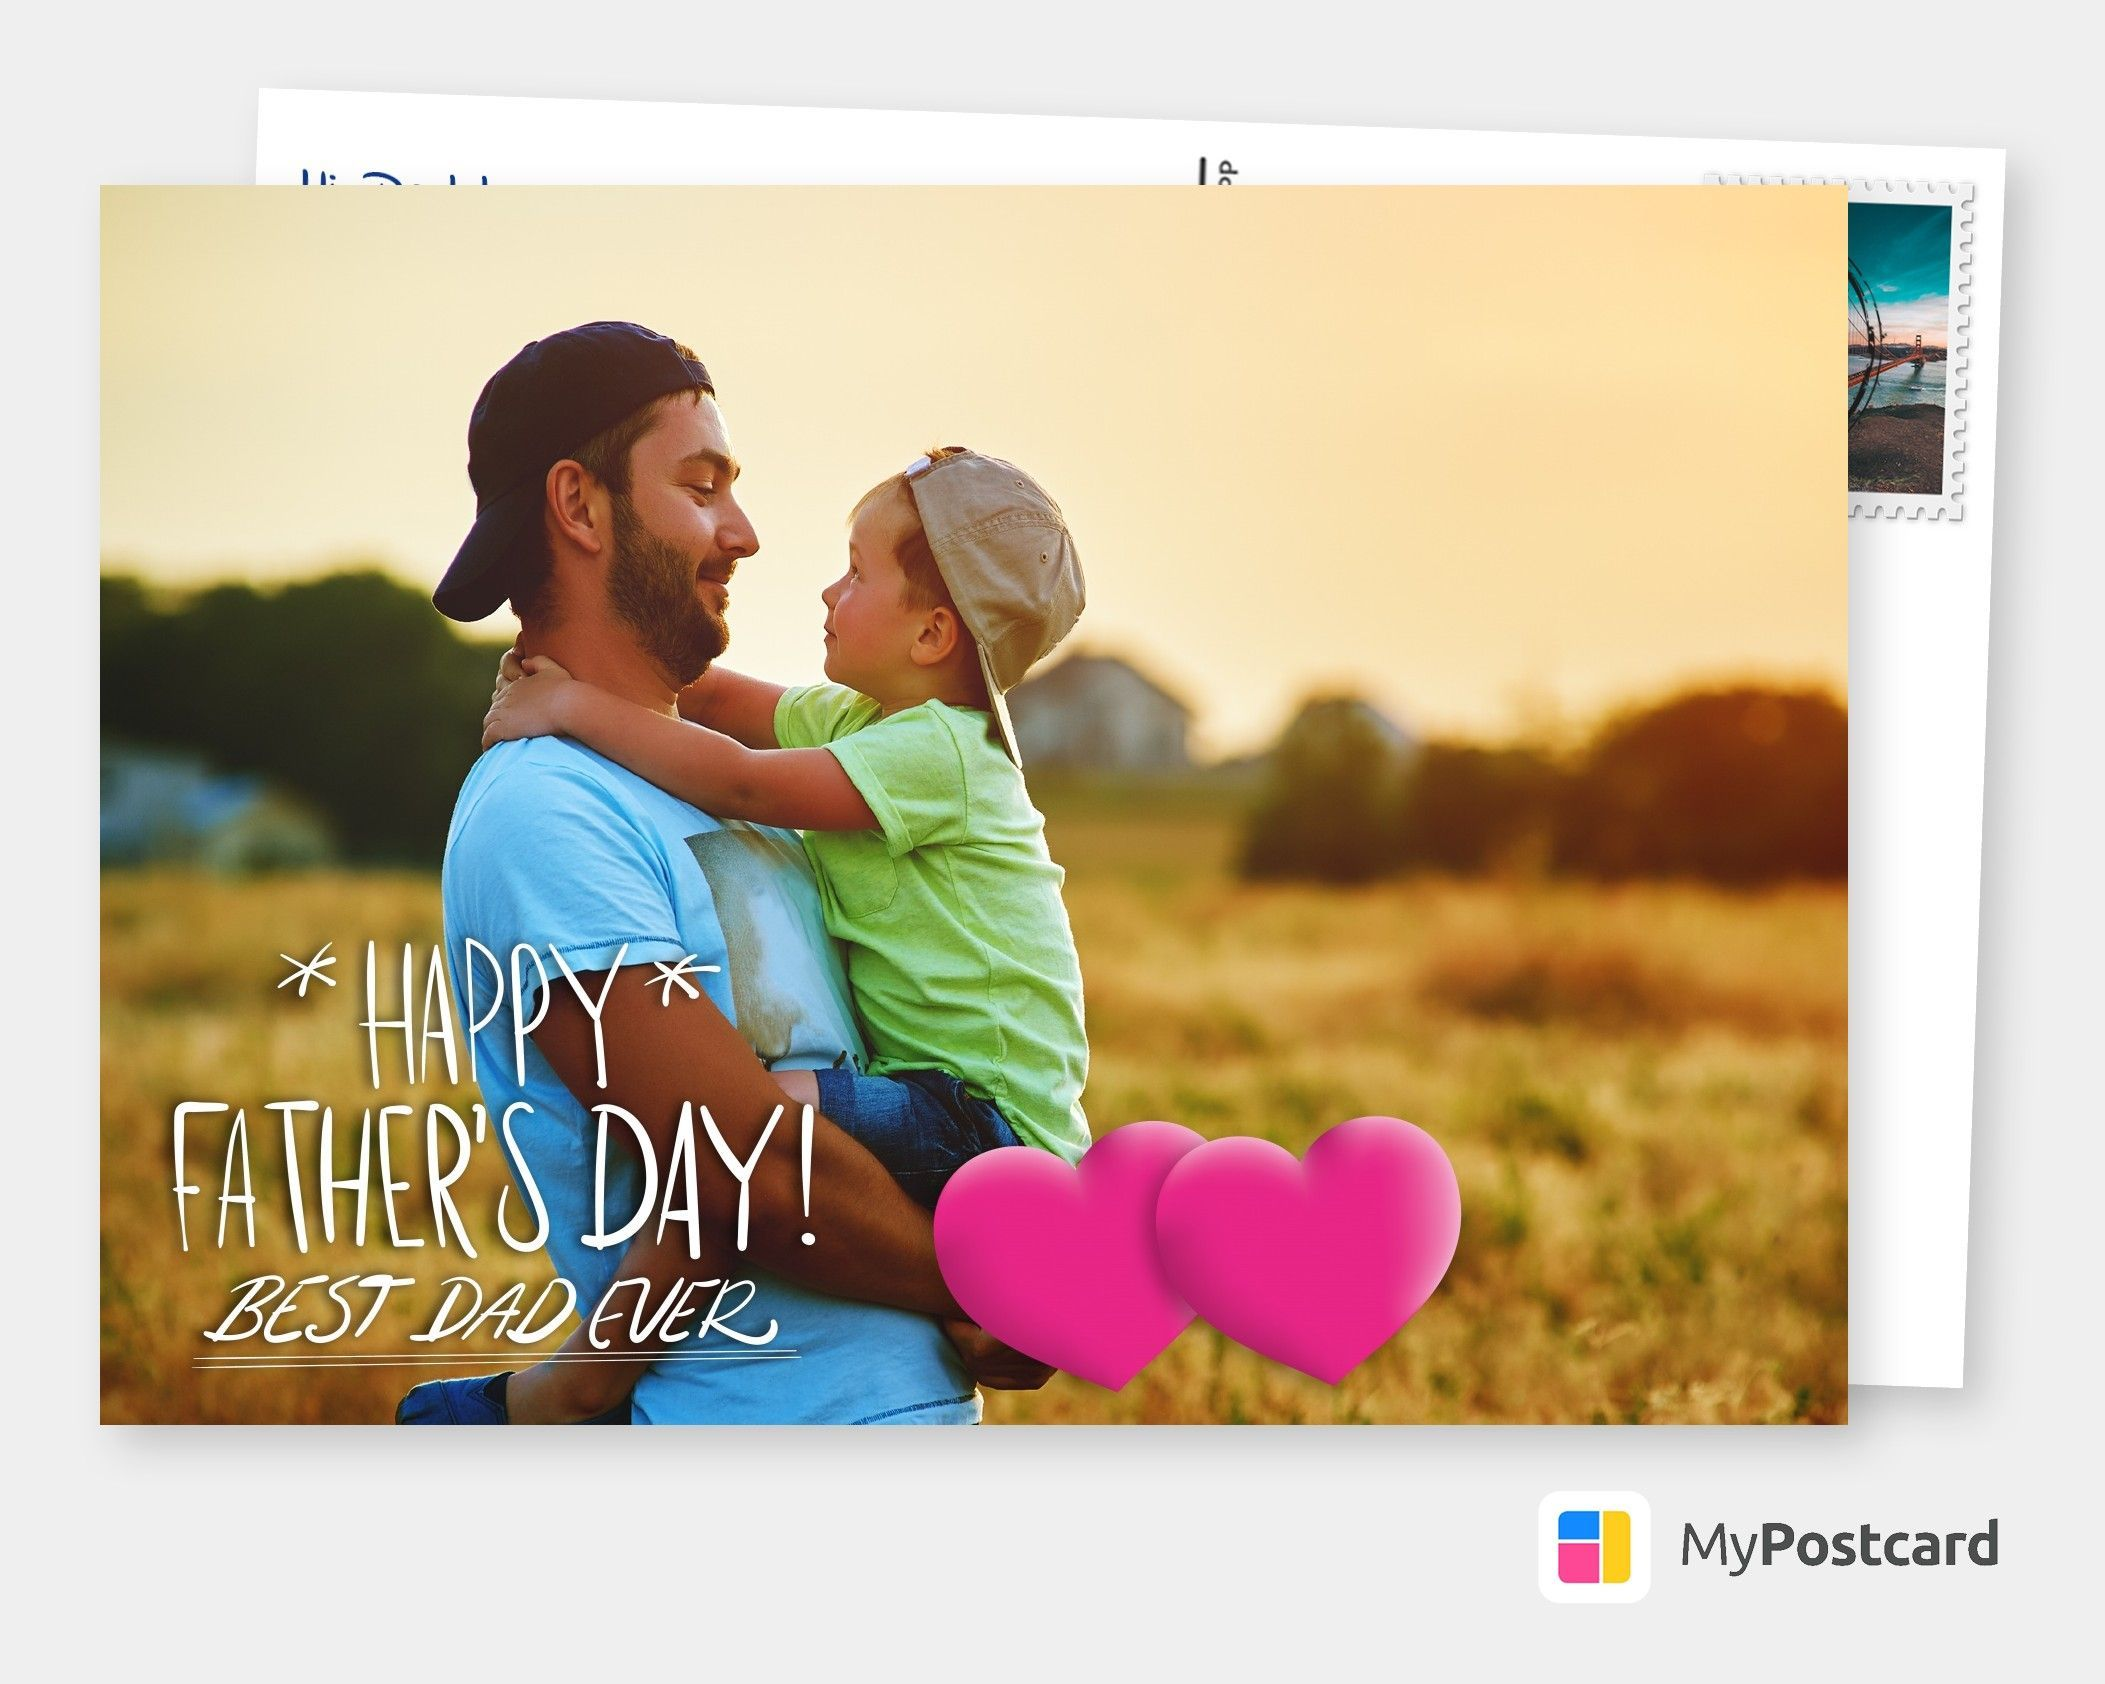 Fathers Day Card Ideas  Fathers Day Cards  Fathers Day Wishes  Fathers Day Cards Fathers Day Card Ideas  Fathers Day Cards  Fathers Day Wishes  Fathers Day Cards